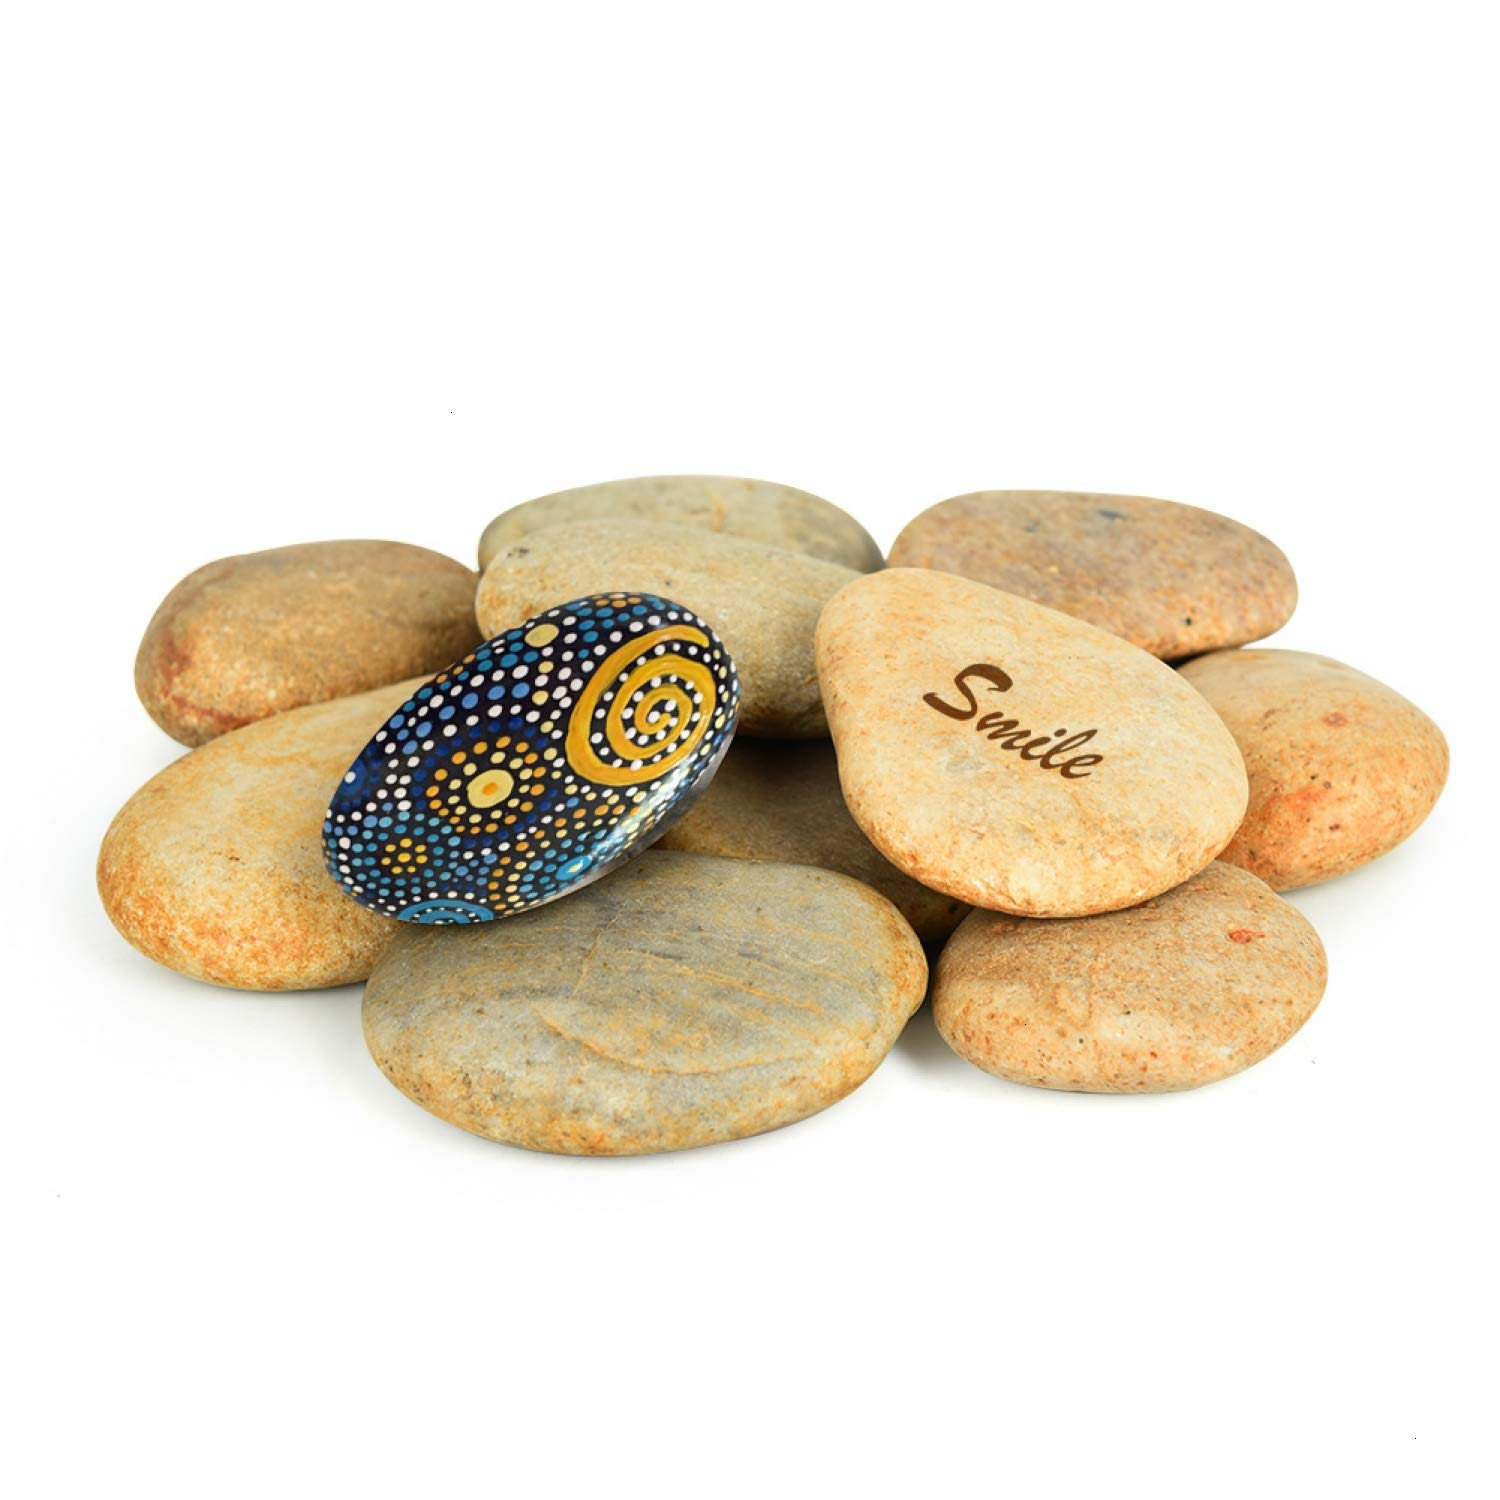 Vumdua Flat Stones for Painting, 12 PCS Kindness Smooth Rocks Natural Painting Supplies Bulk Perfect for Craft, Art, Decoration (1.97 to 3.54 Inch)